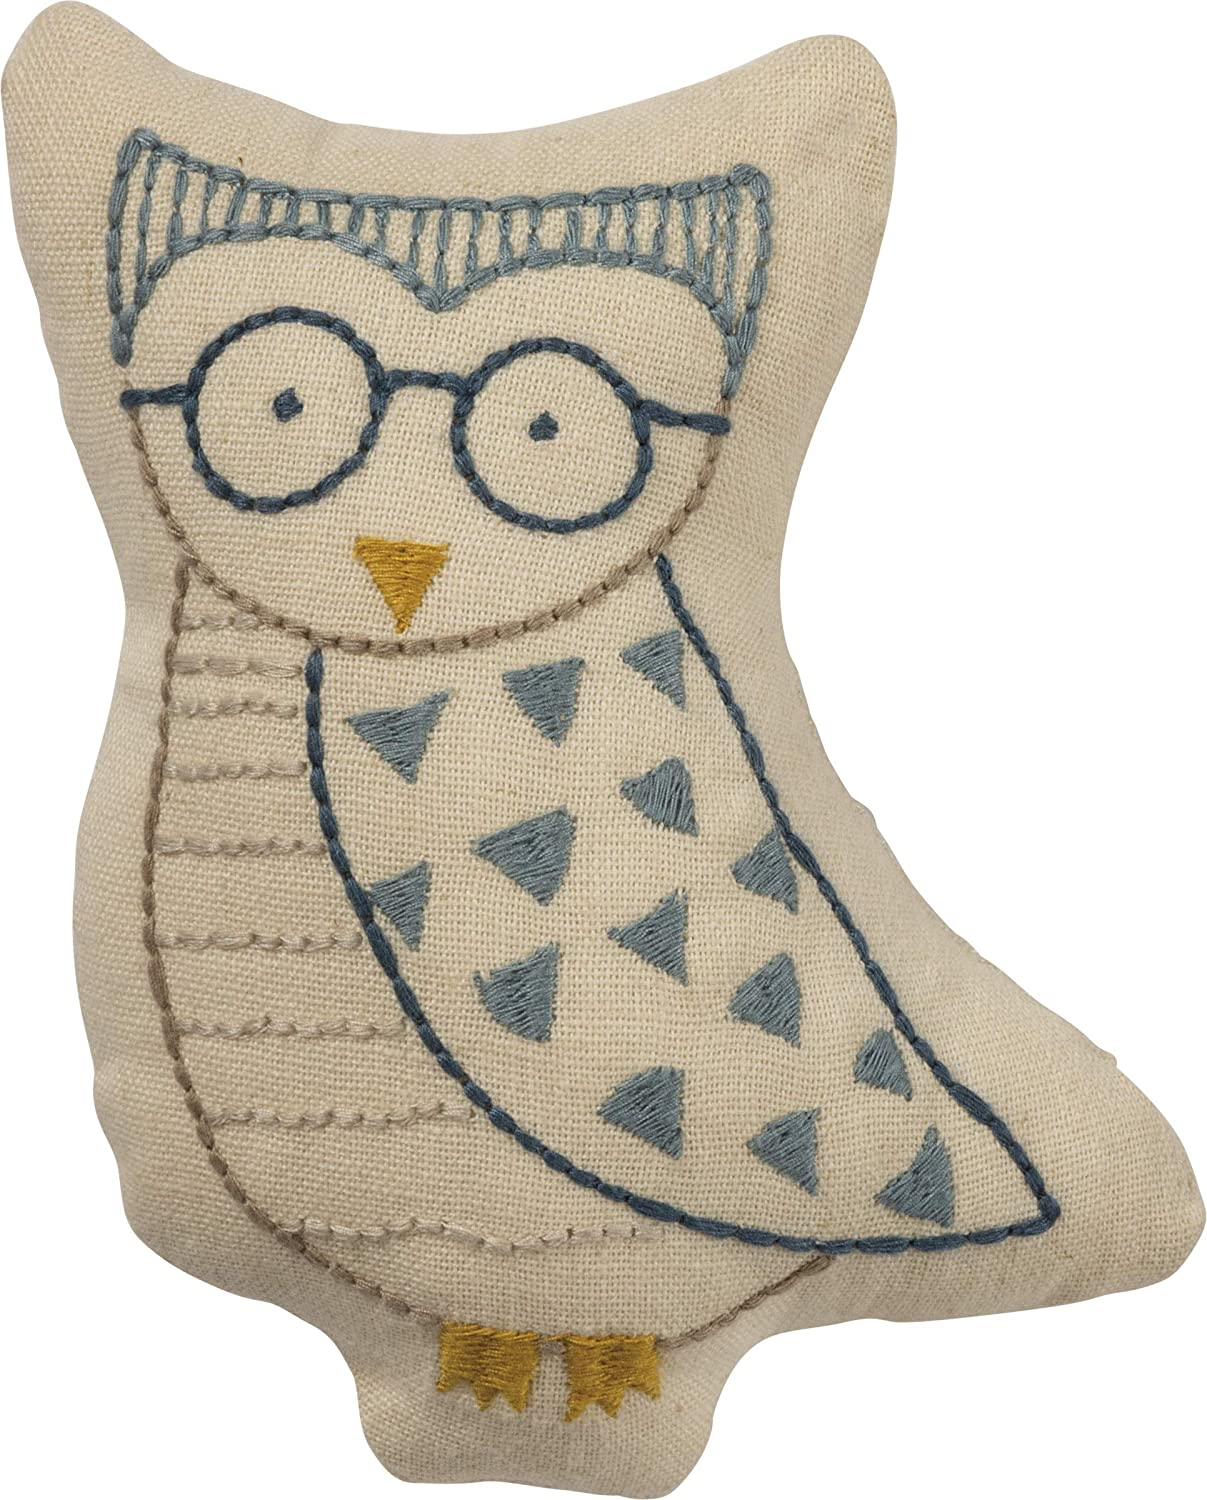 Primitives by Kathy Cotton/Linen Shaped Pillow, Small, Owl